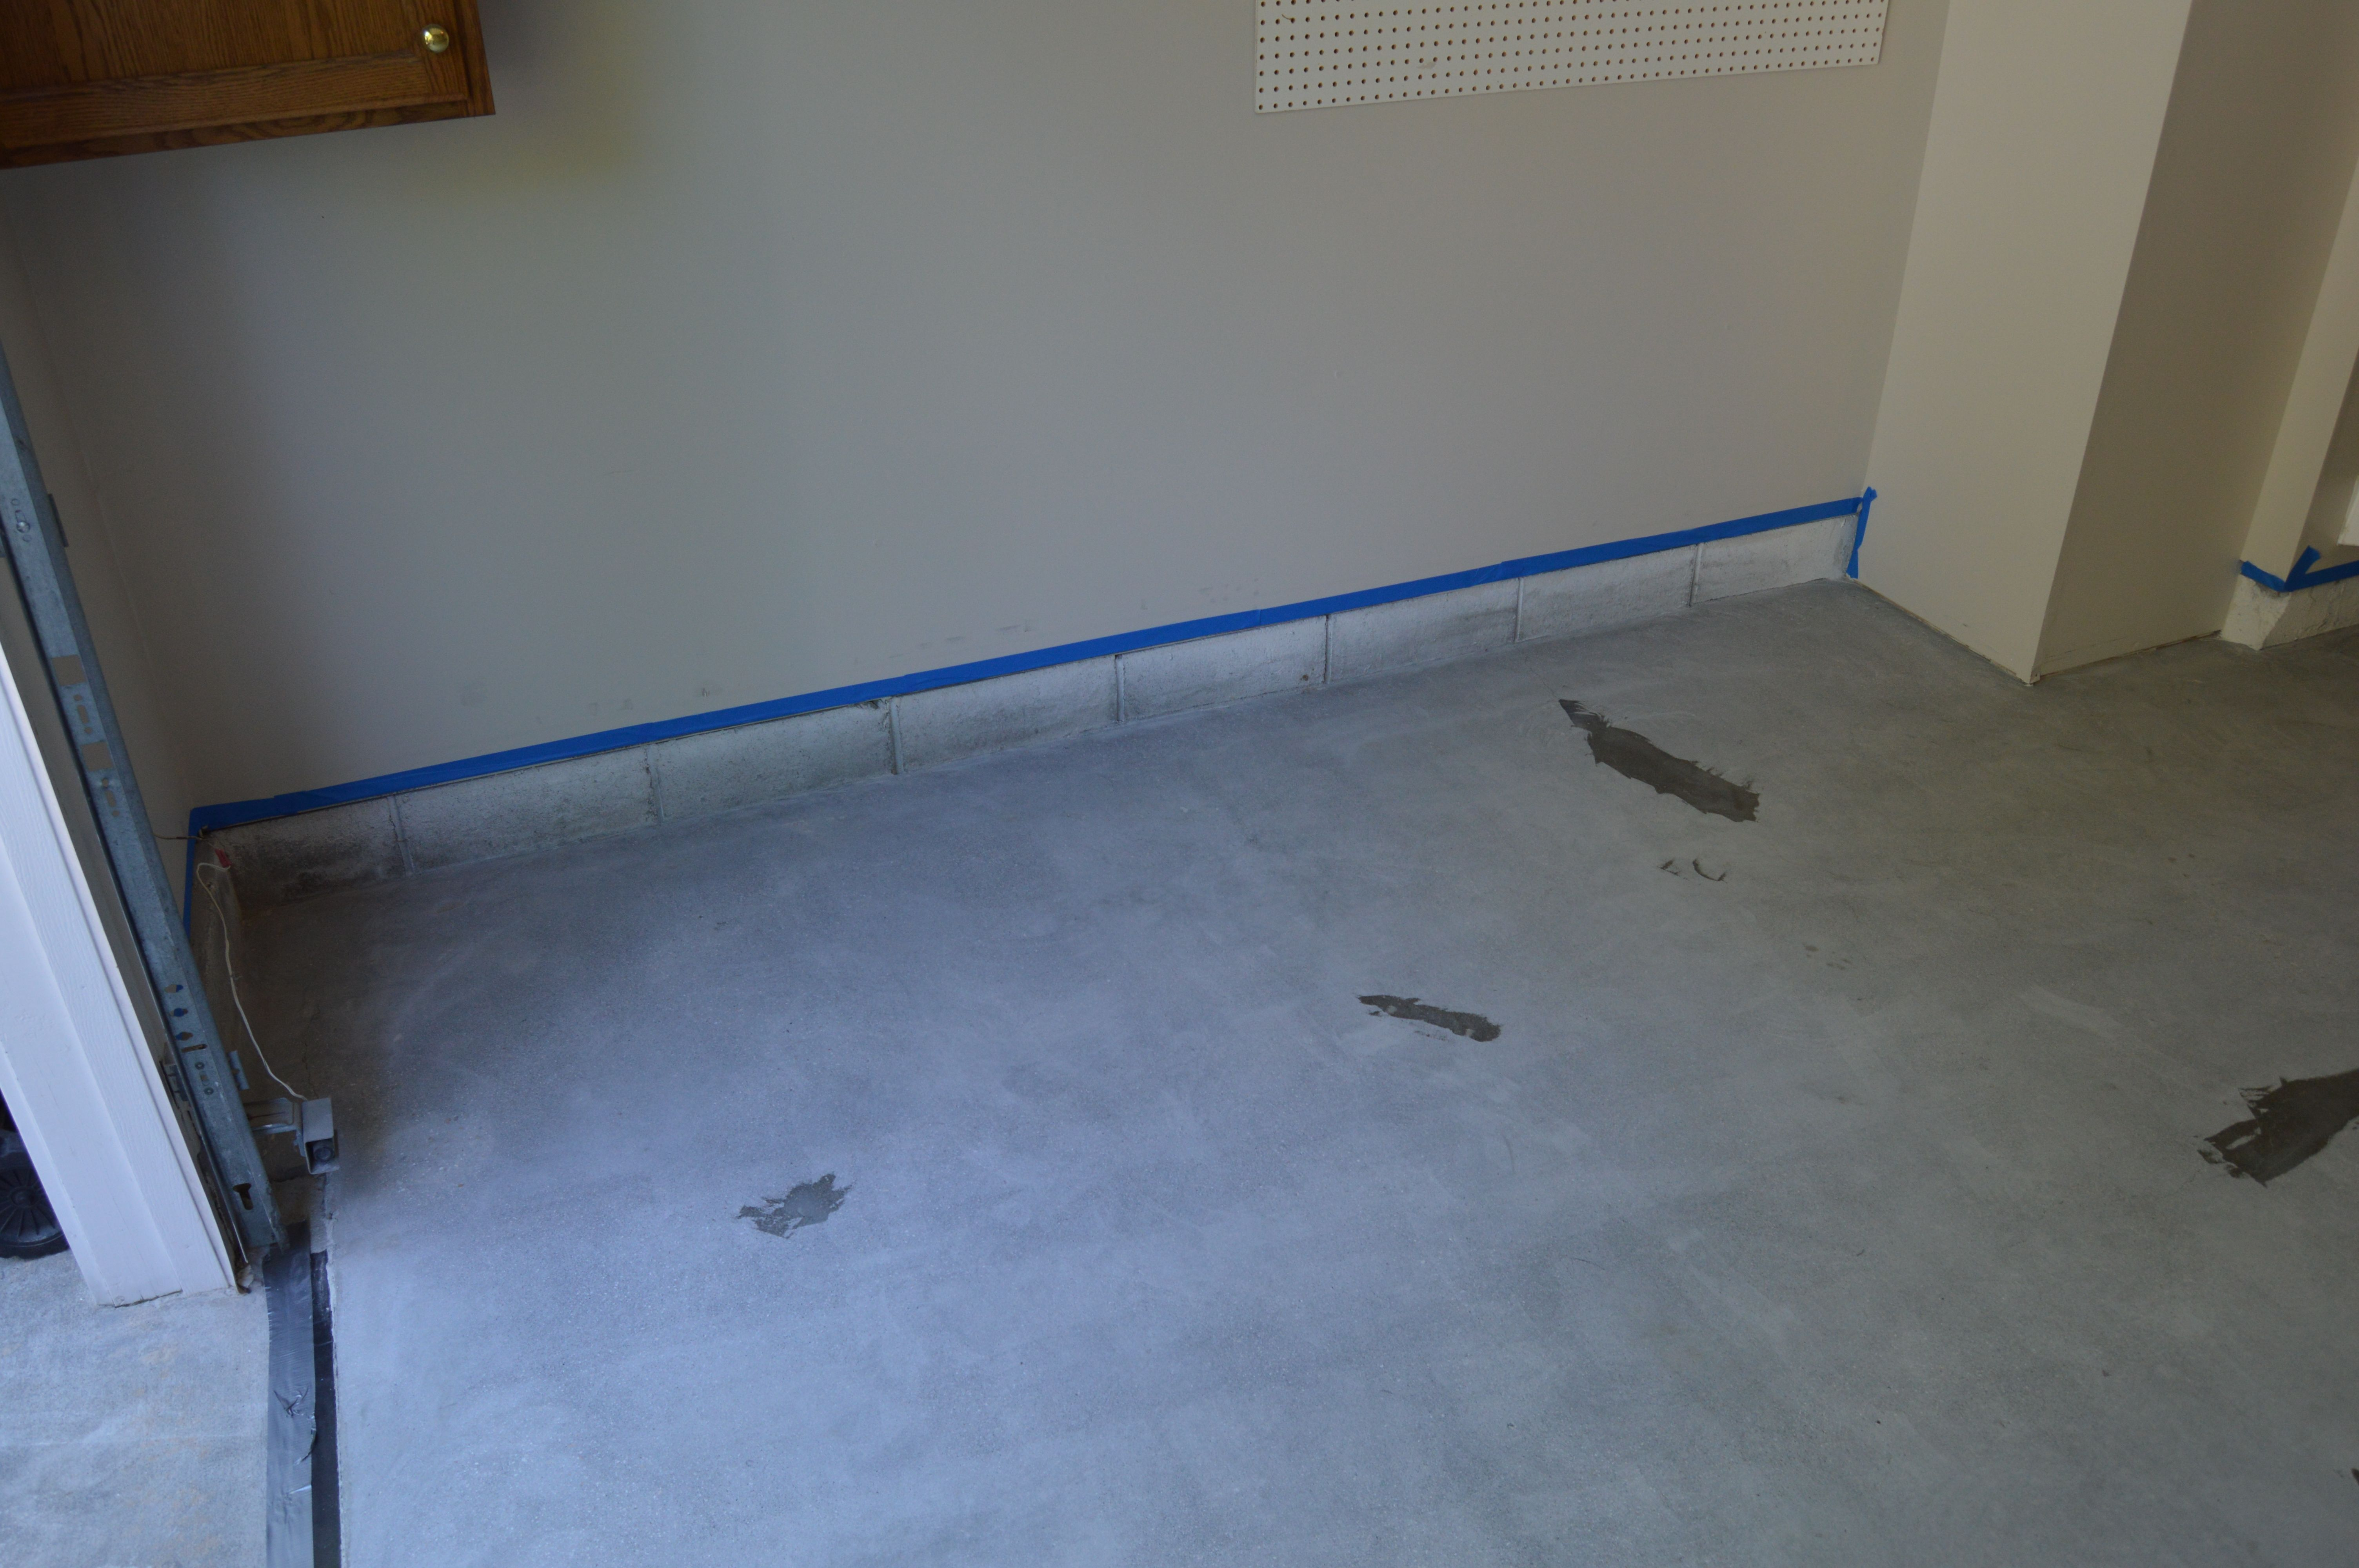 Garage Floor By Tailored Living Featuring PremierGarage (Before)